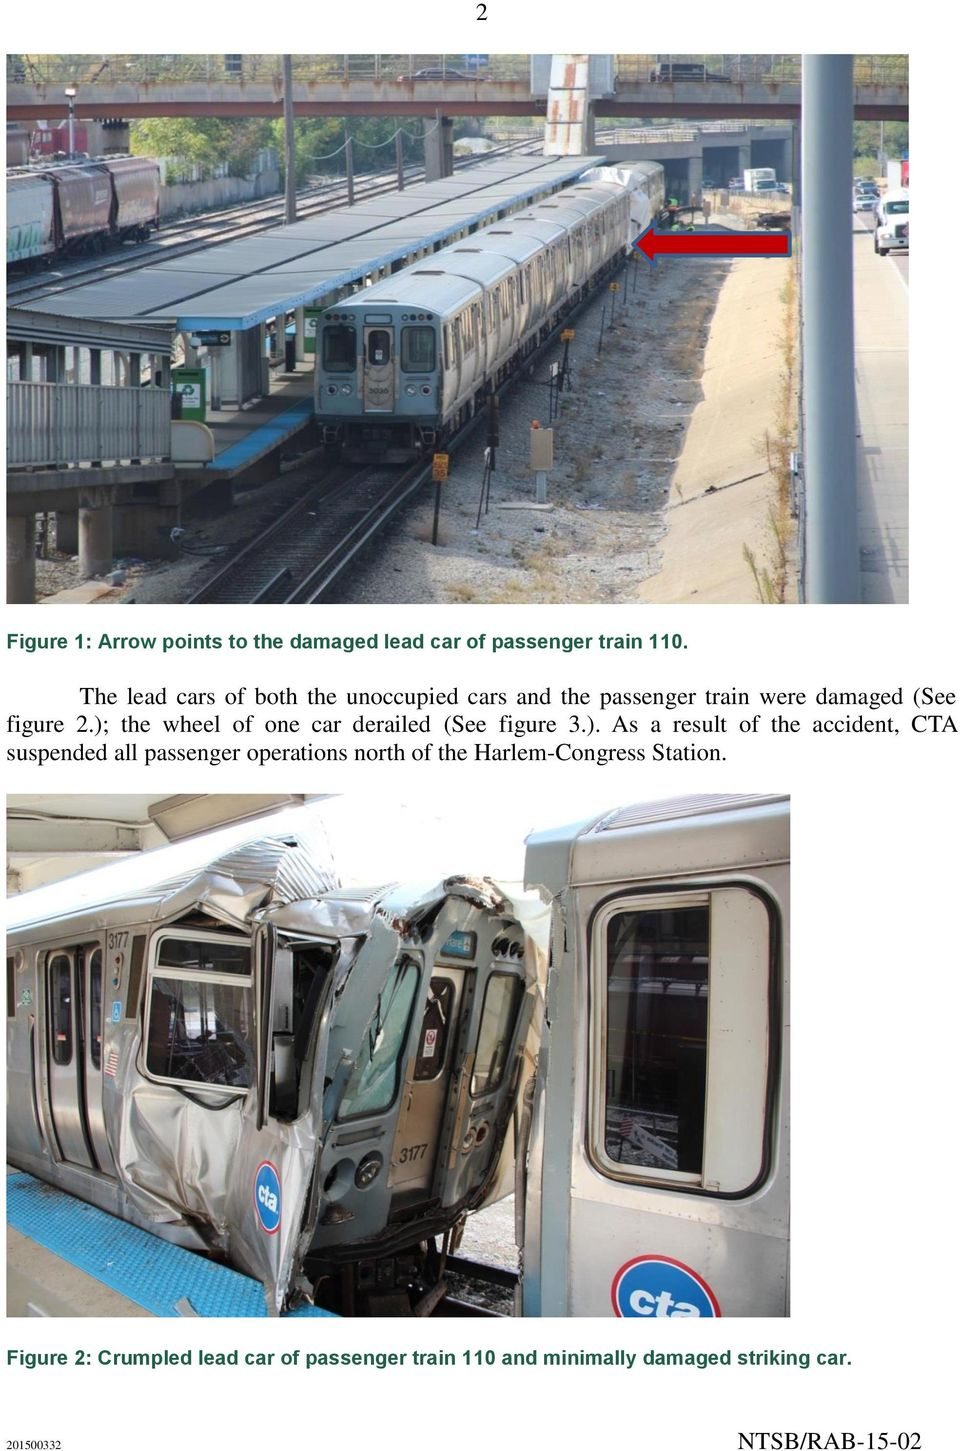 ); the wheel of one car derailed (See figure 3.). As a result of the accident, CTA suspended all